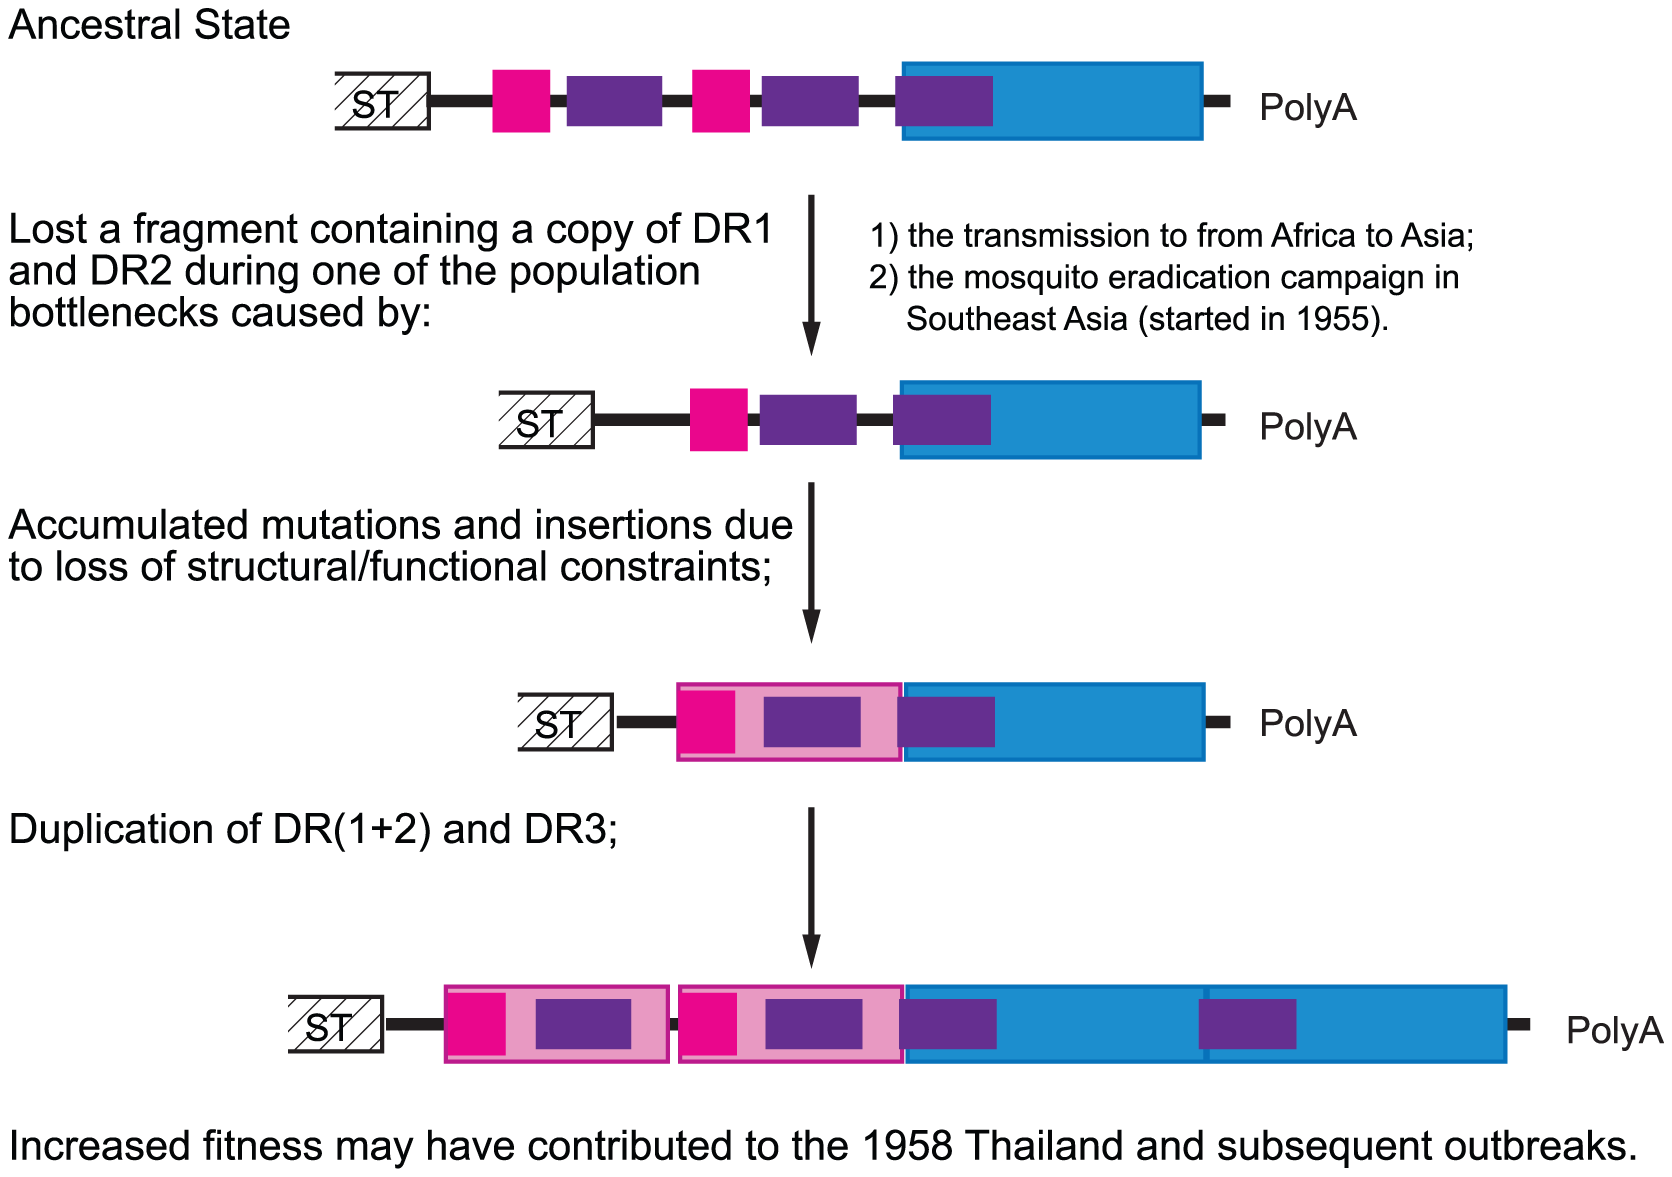 Hypothetical evolutionary pathway of CHIKV Asian lineage 3′UTR.